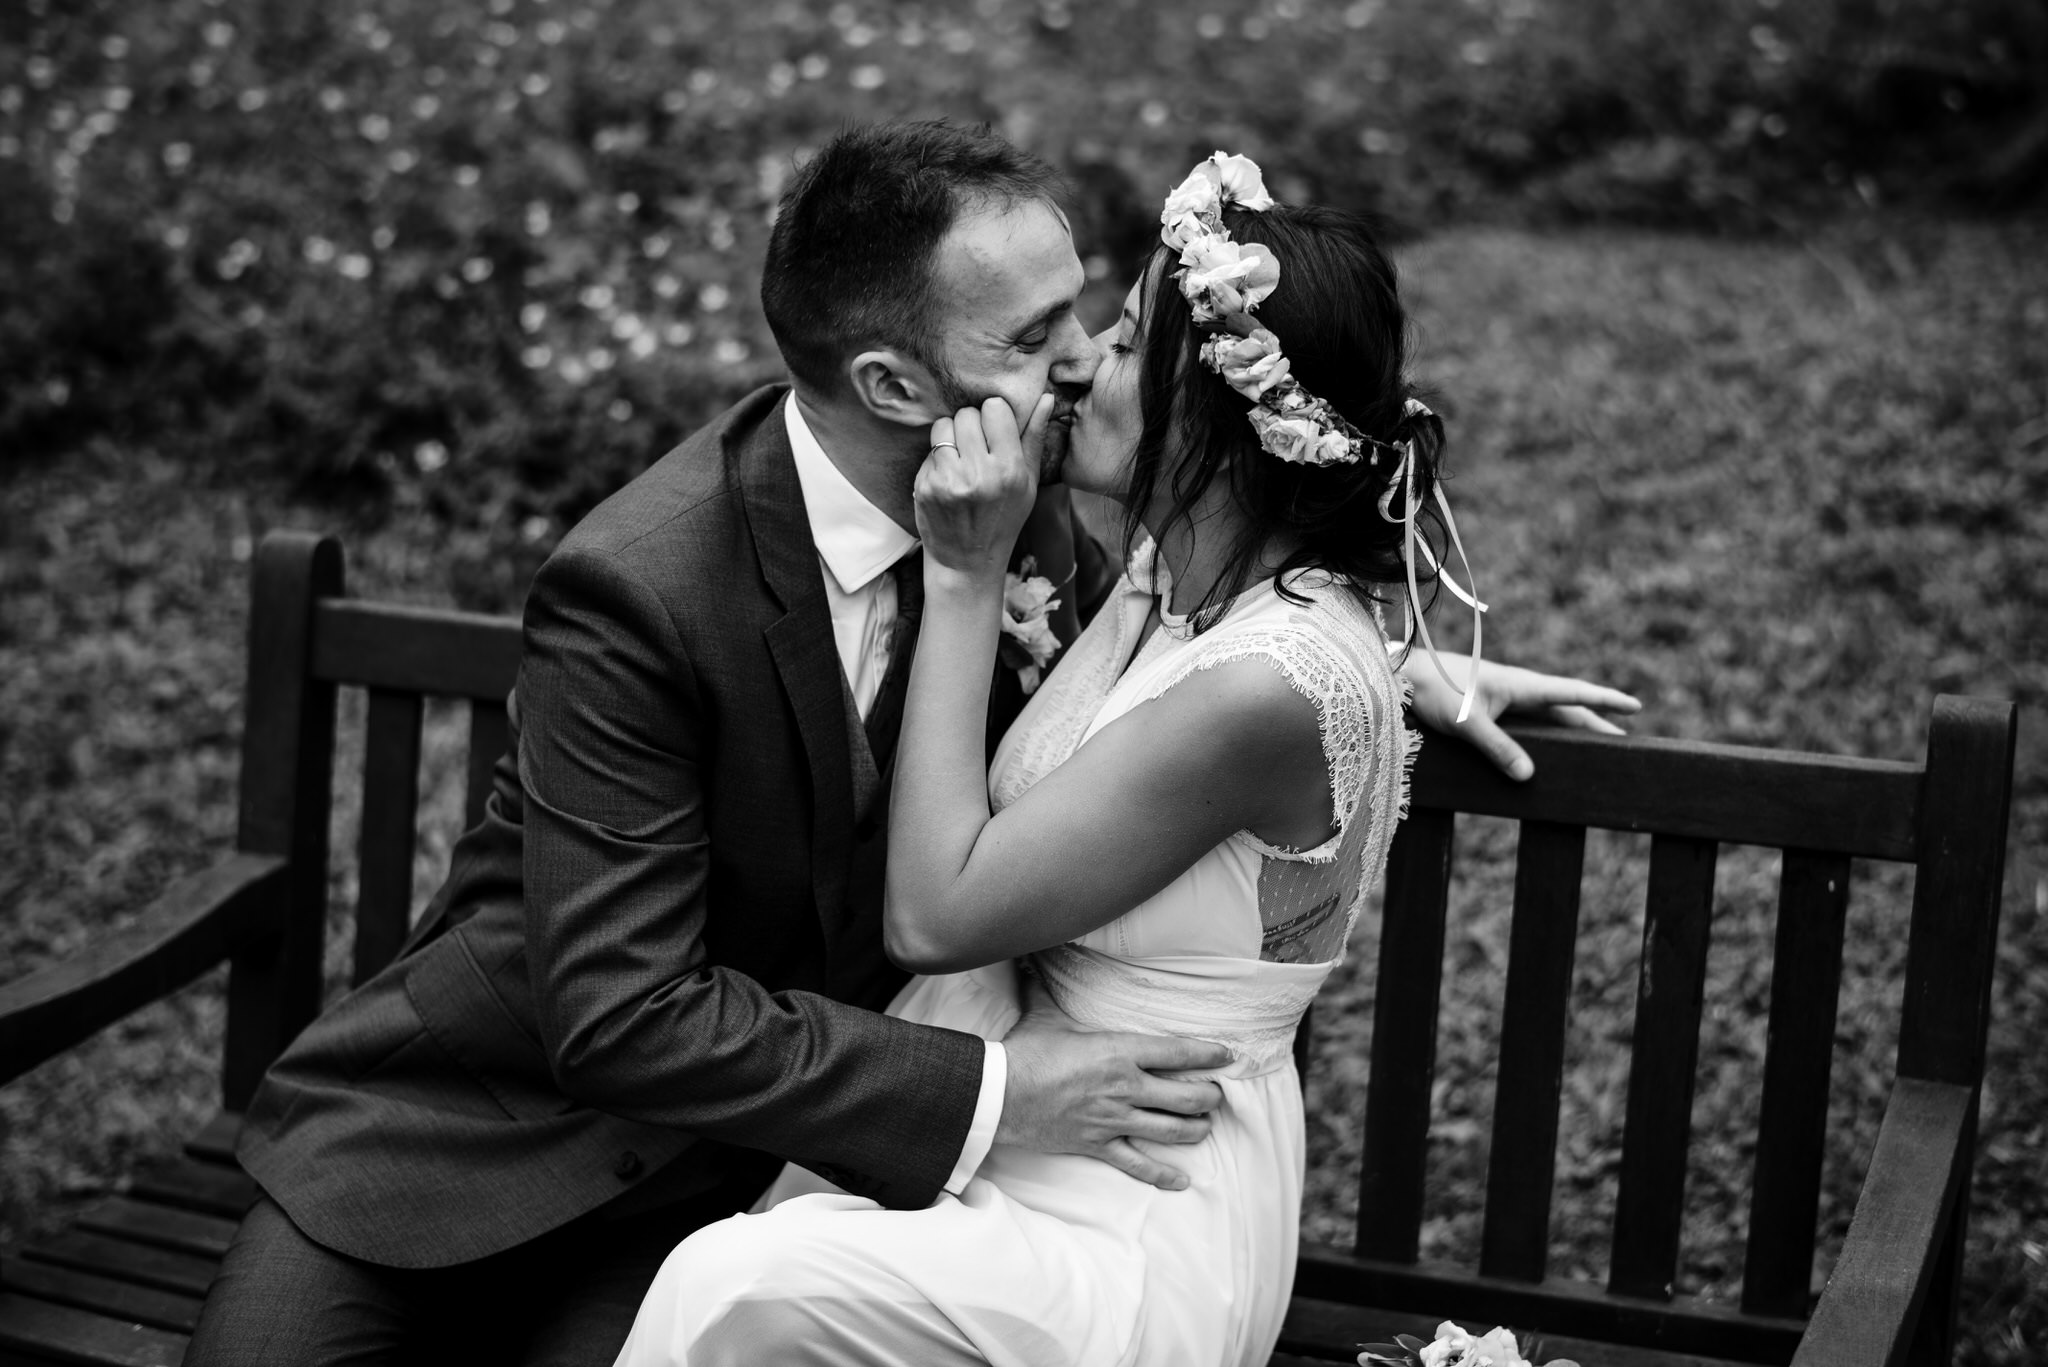 Bride and groom kiss on bench, Botanical Gardens, Victoria Park